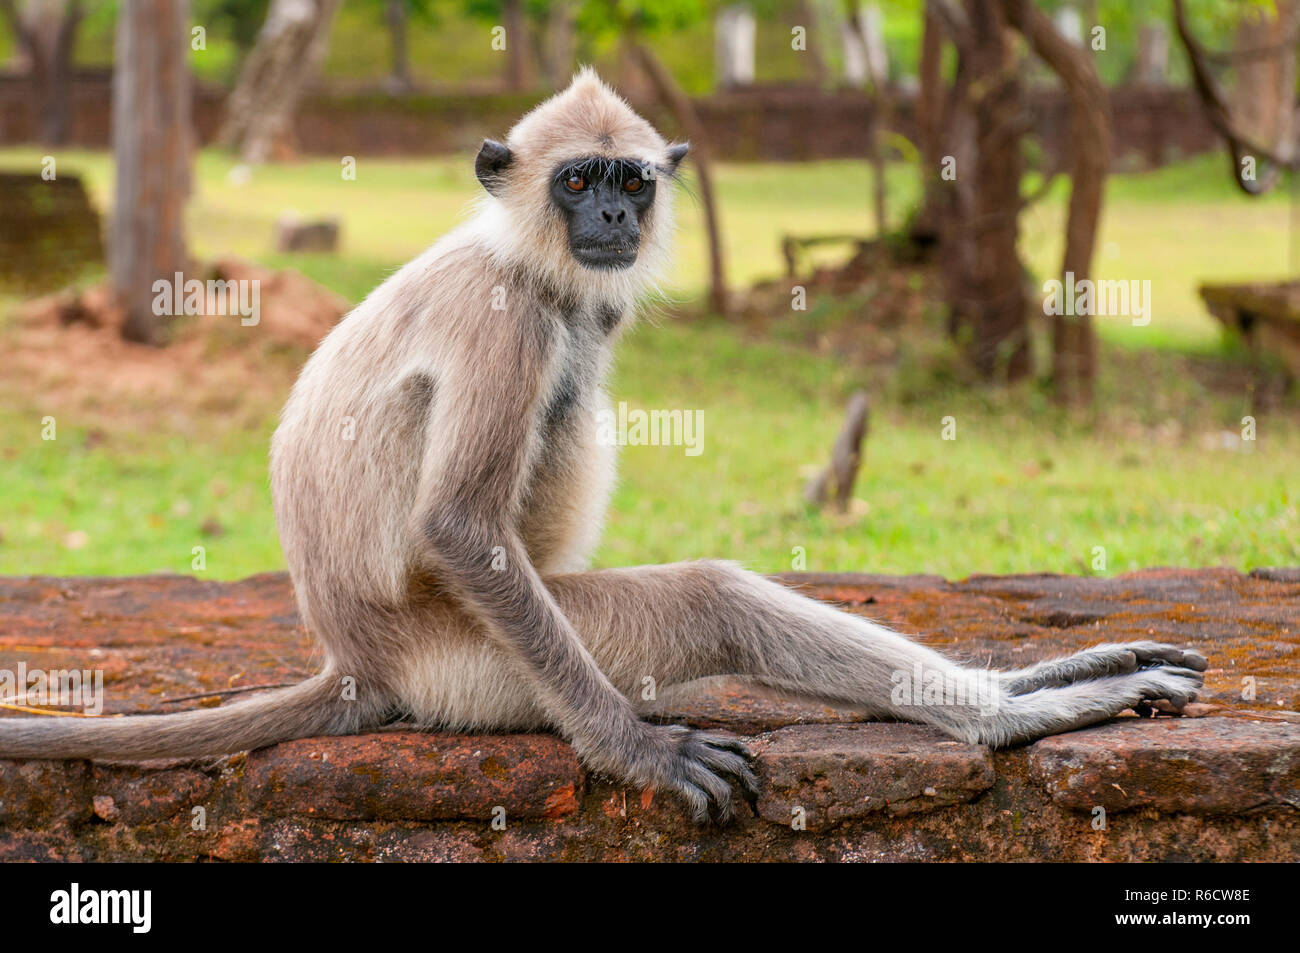 Gray Langurs Or Hanuman Langurs, The Most Widespread Langurs Of The Indian Subcontinent, Are A Group Of Old World Monkeys, Polonnaruwa, Sri Lanka - Stock Image